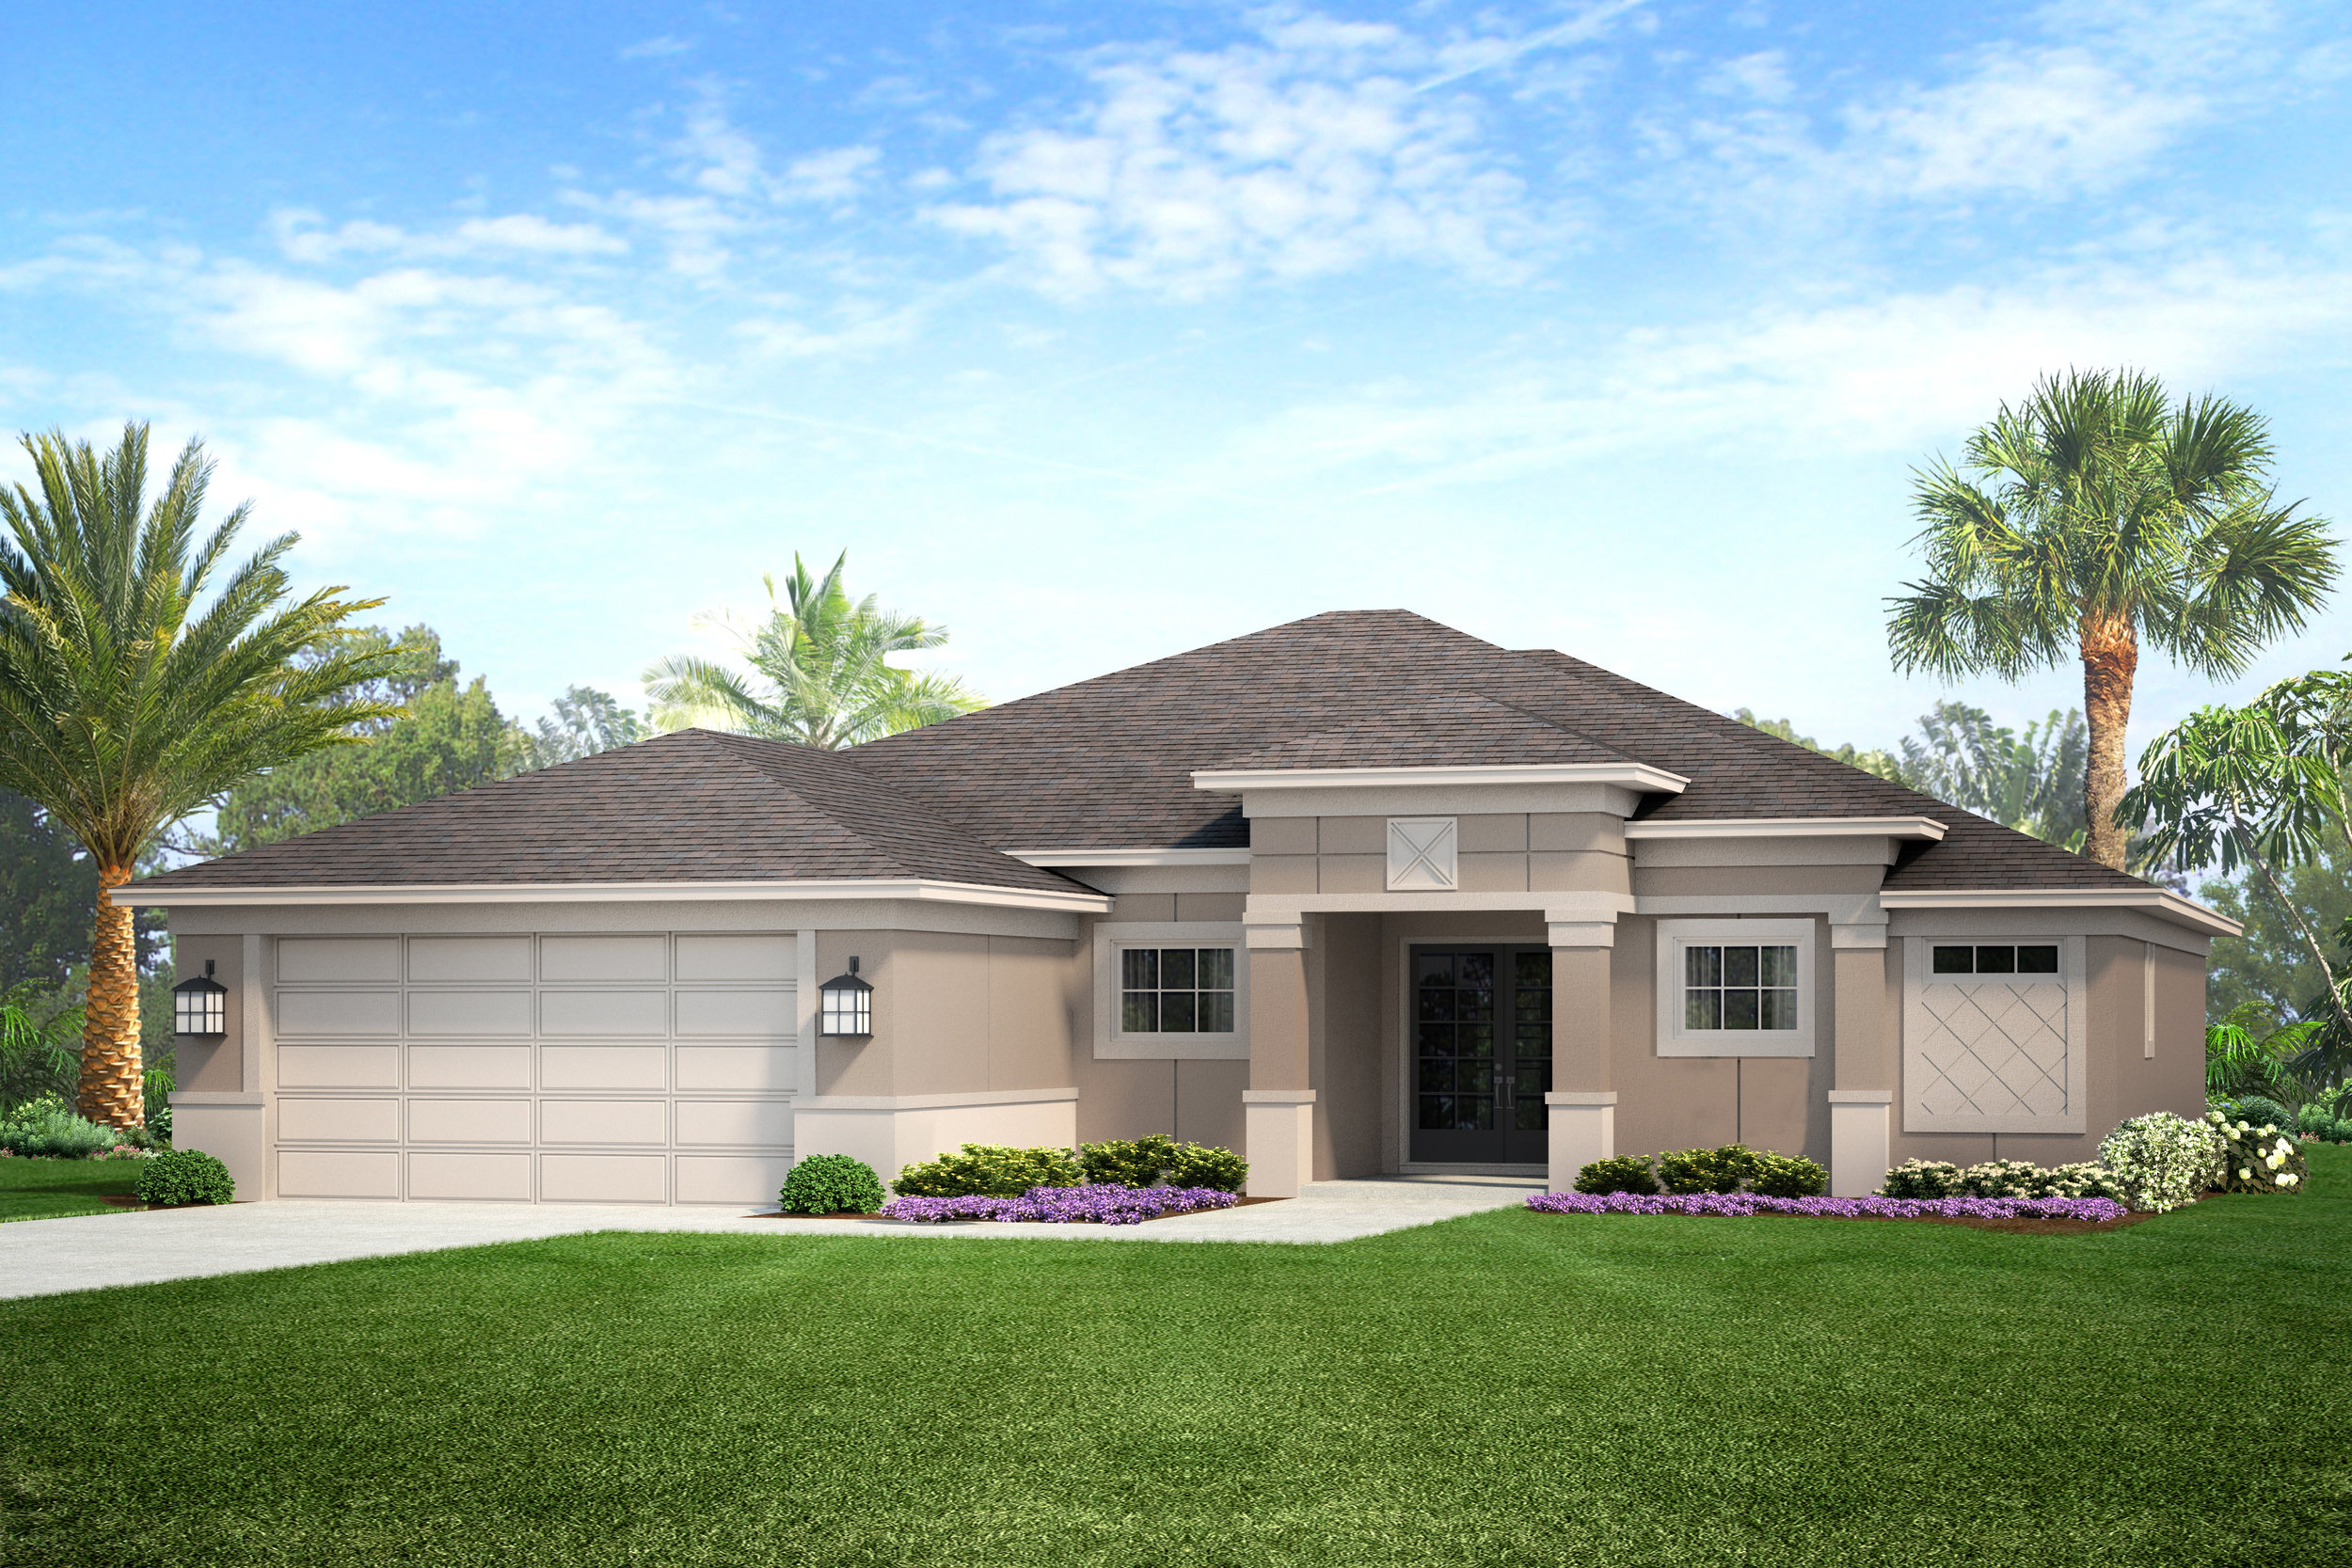 This model home was designed for Waterside Homes.